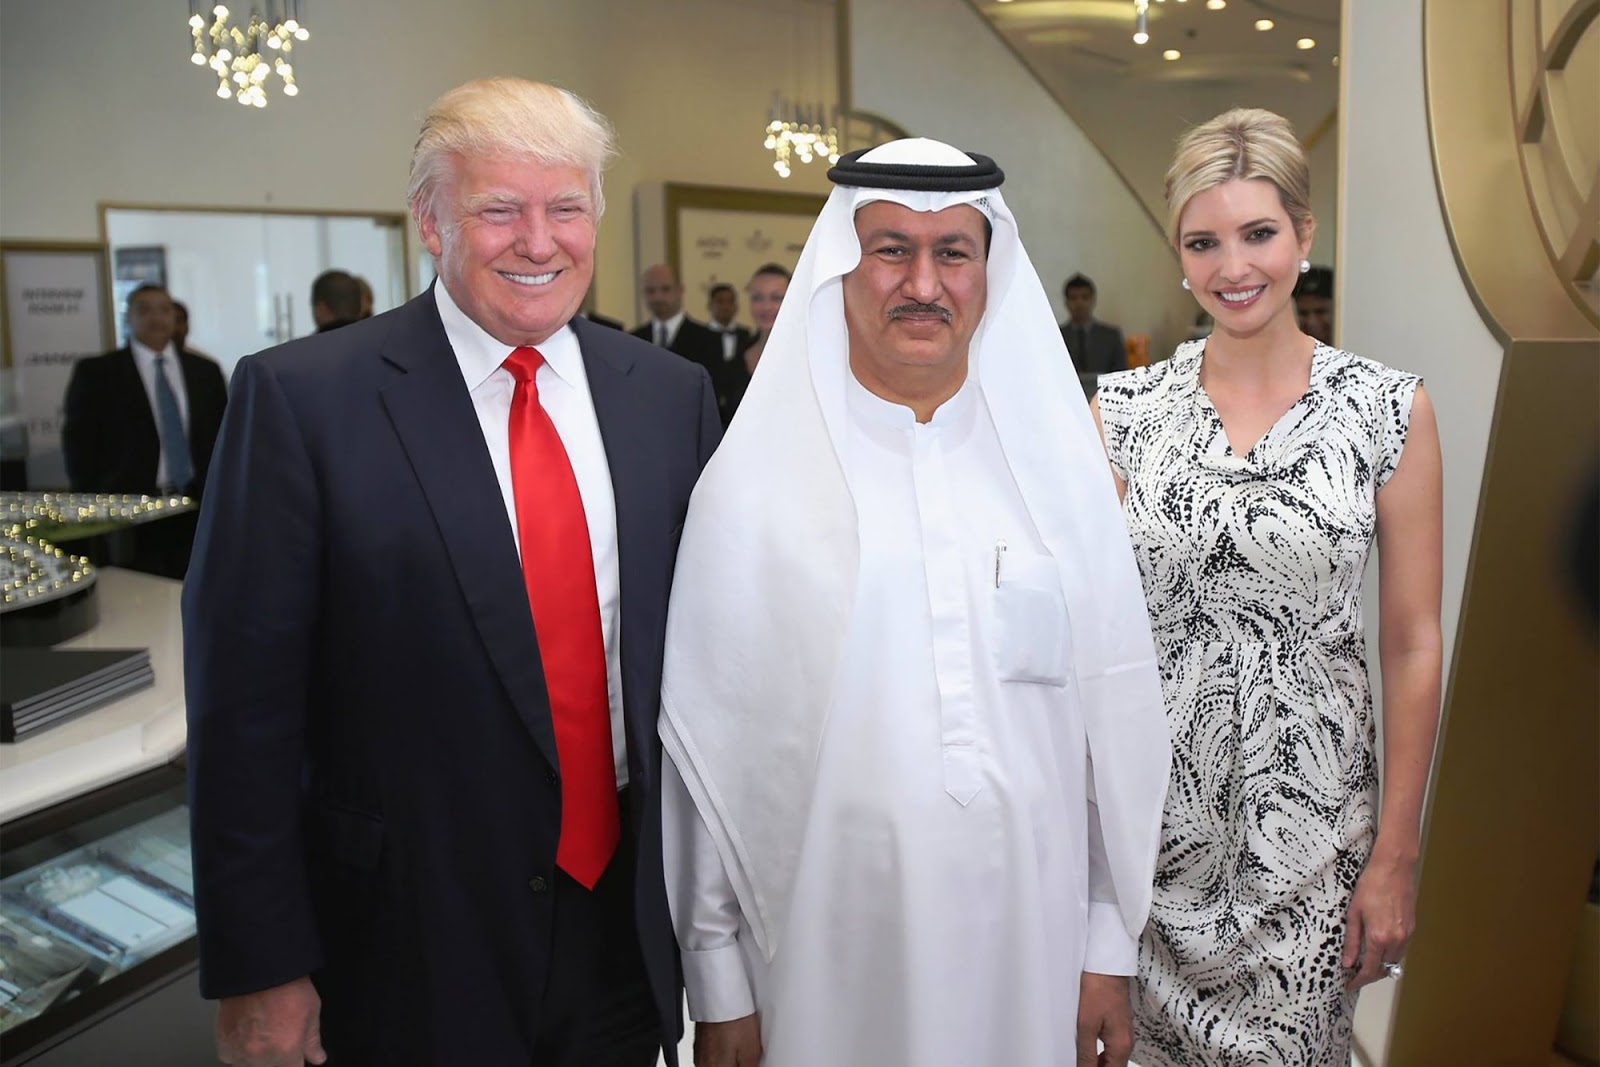 trump-and-wealthy-arab-gulf-figure